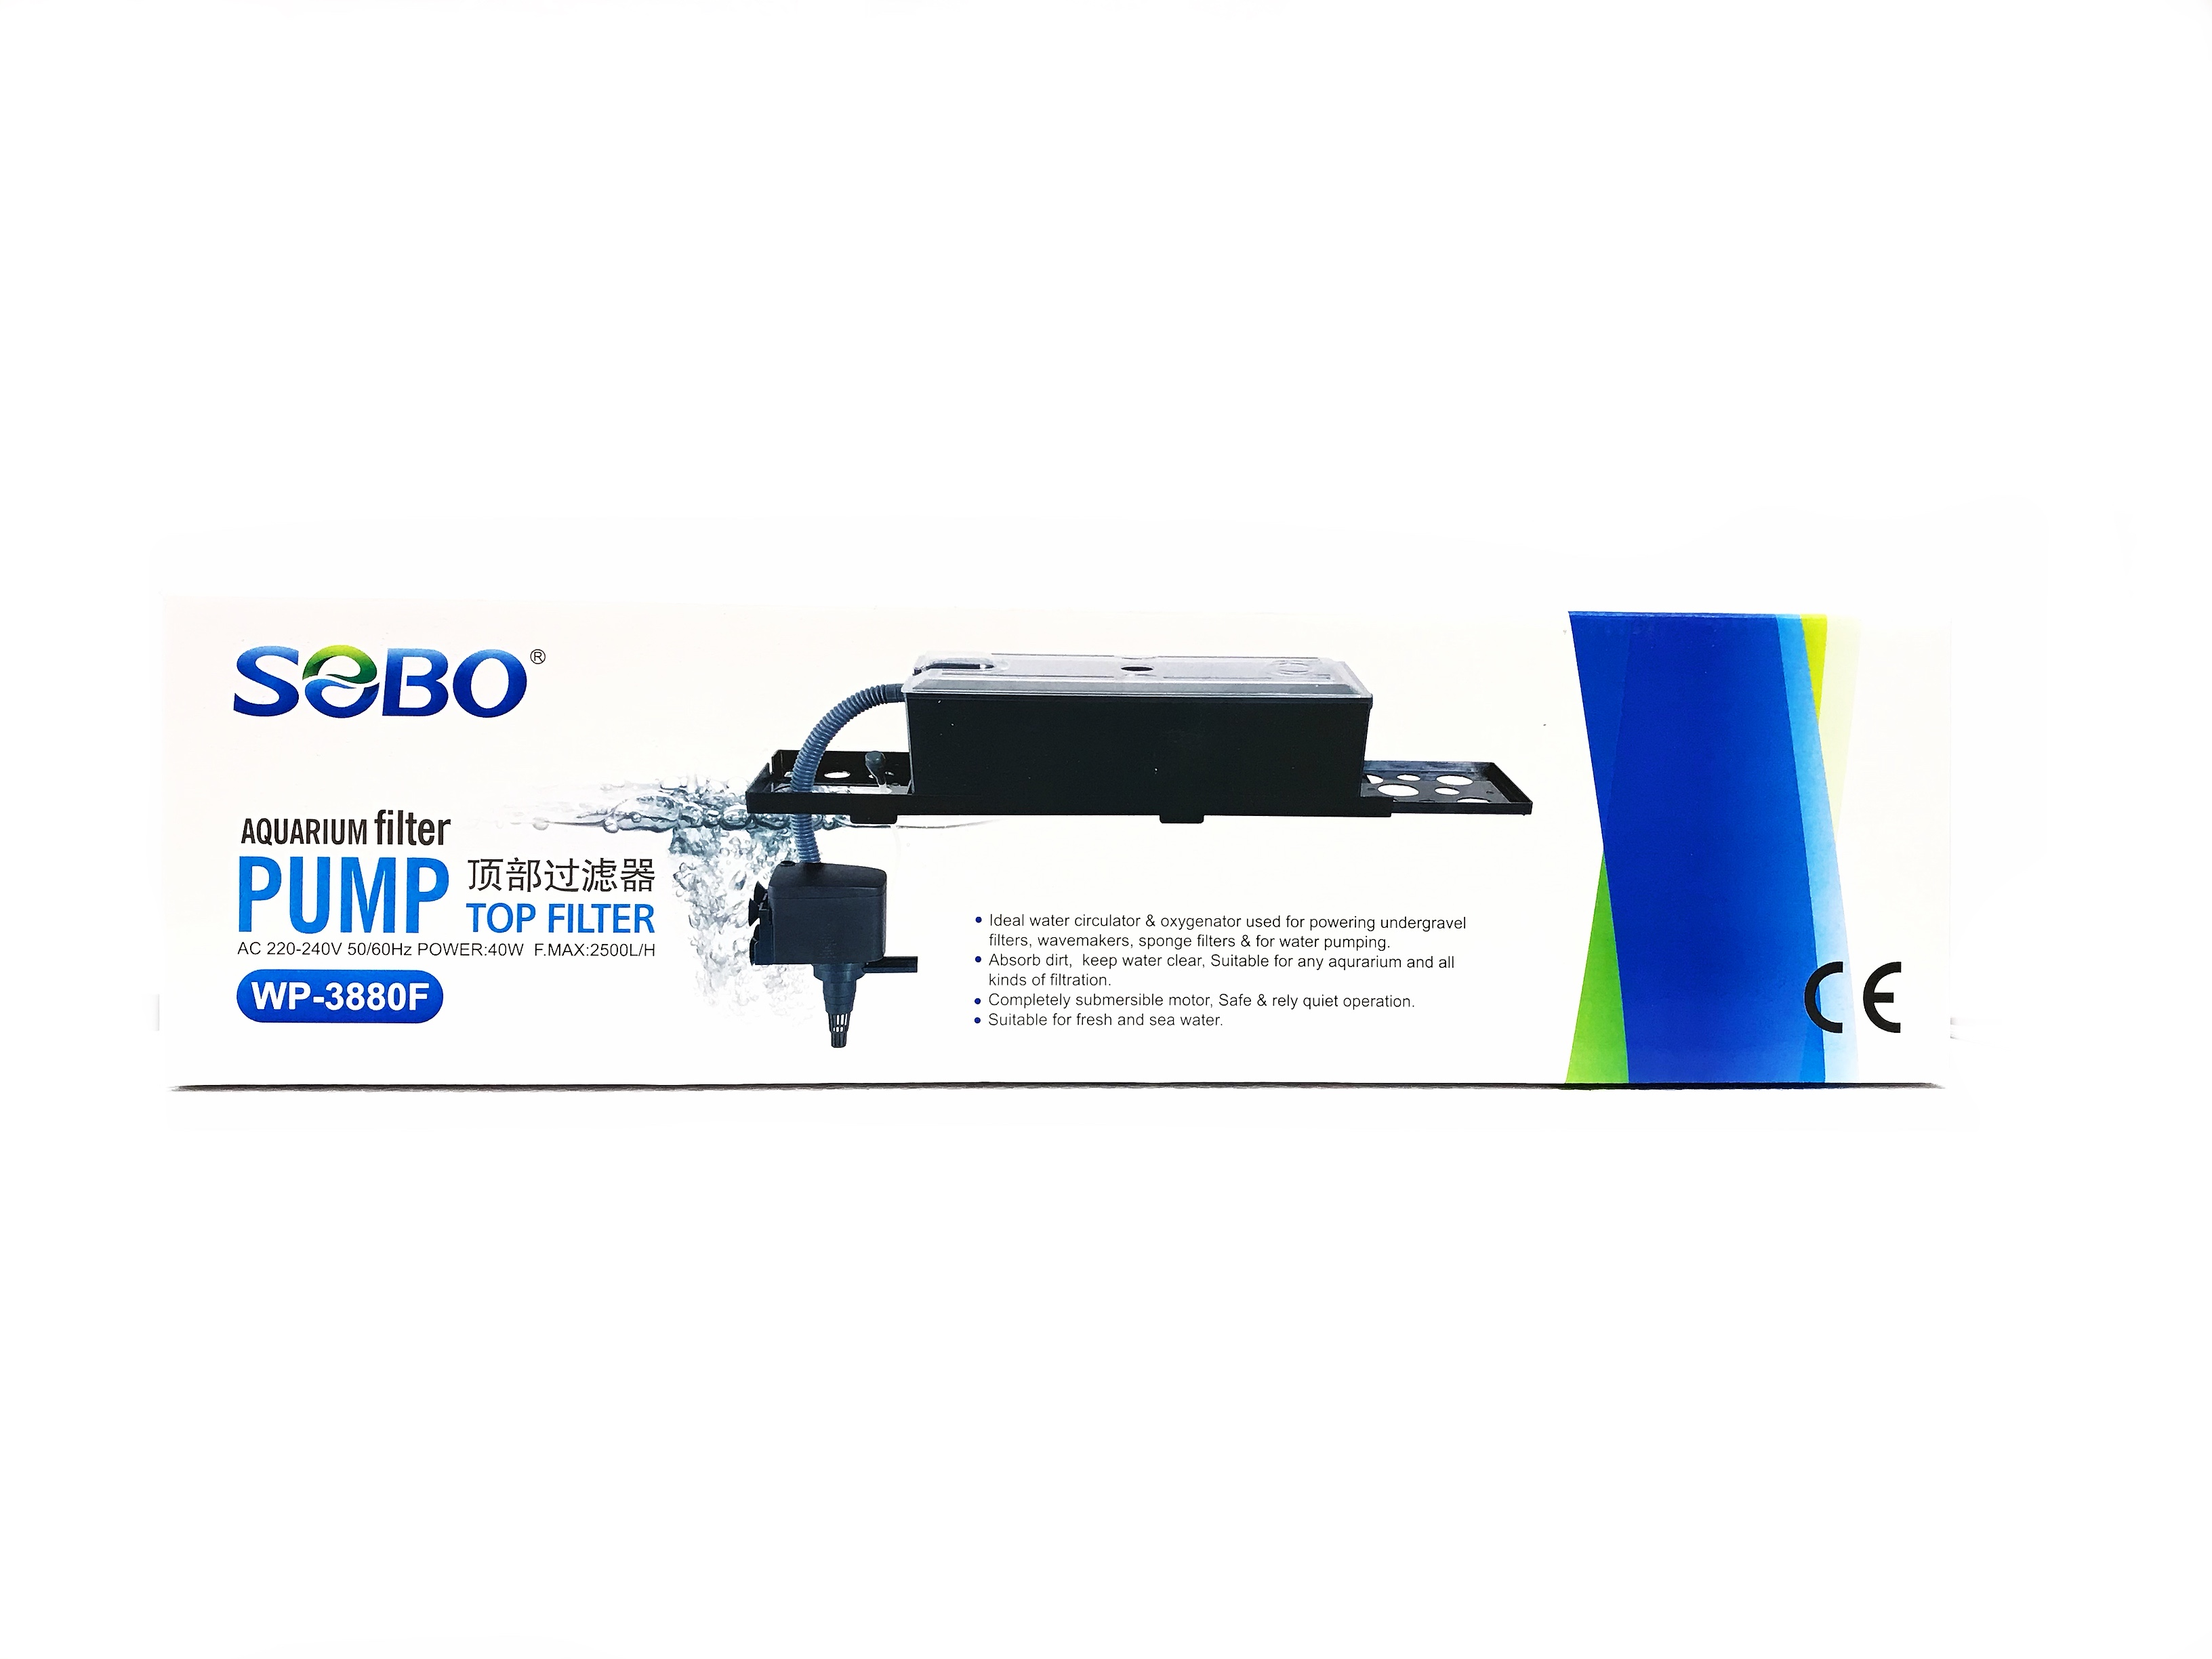 Sobo Top Filter WP-3880F